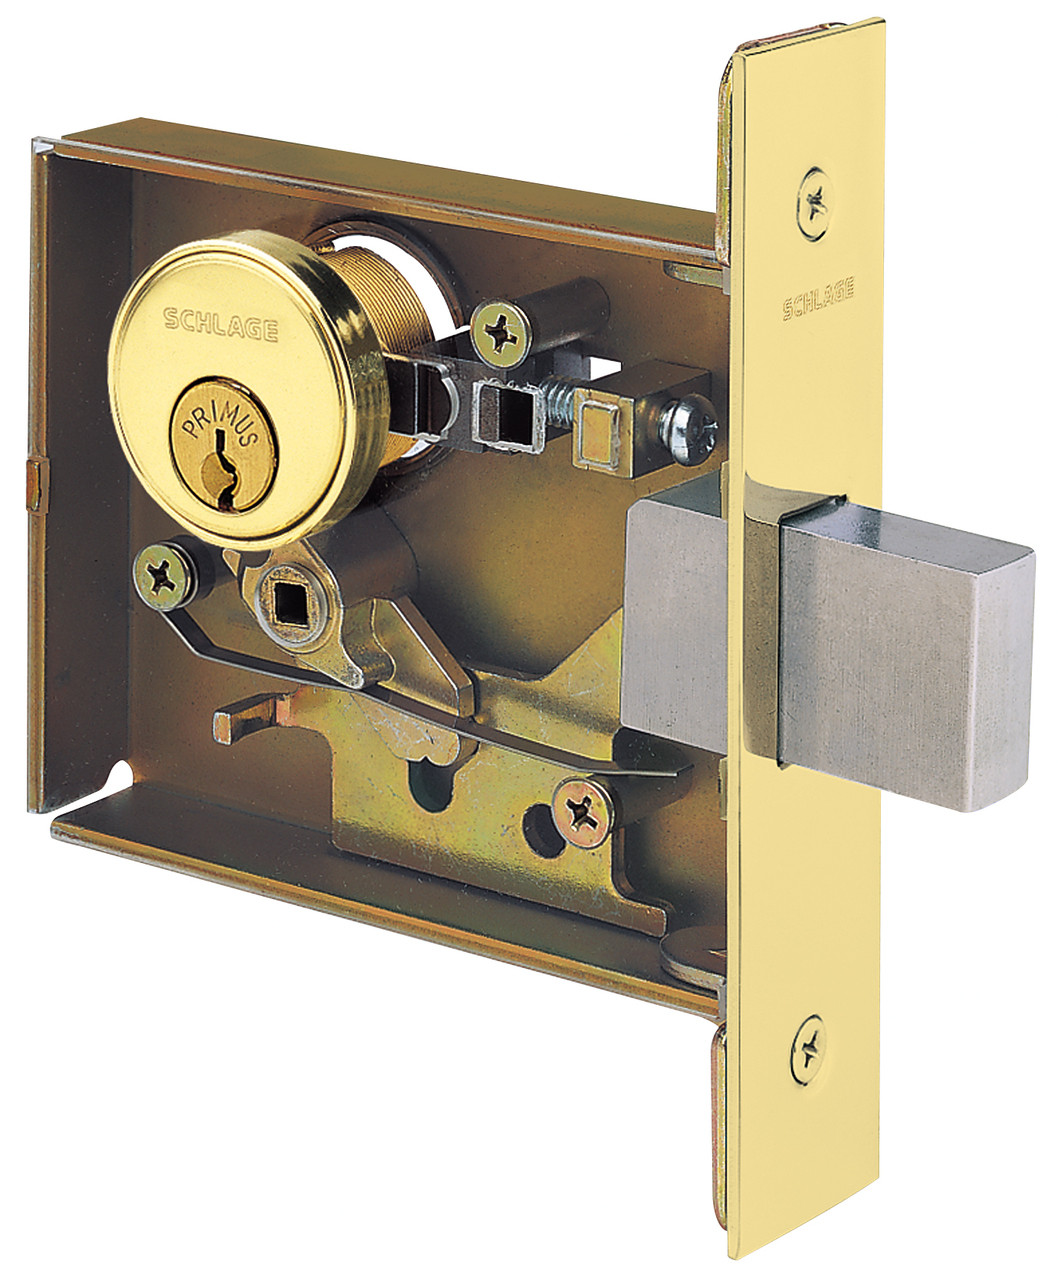 Schlage L Series L400 Grade 1 Small Mortise Deadbolt Locks